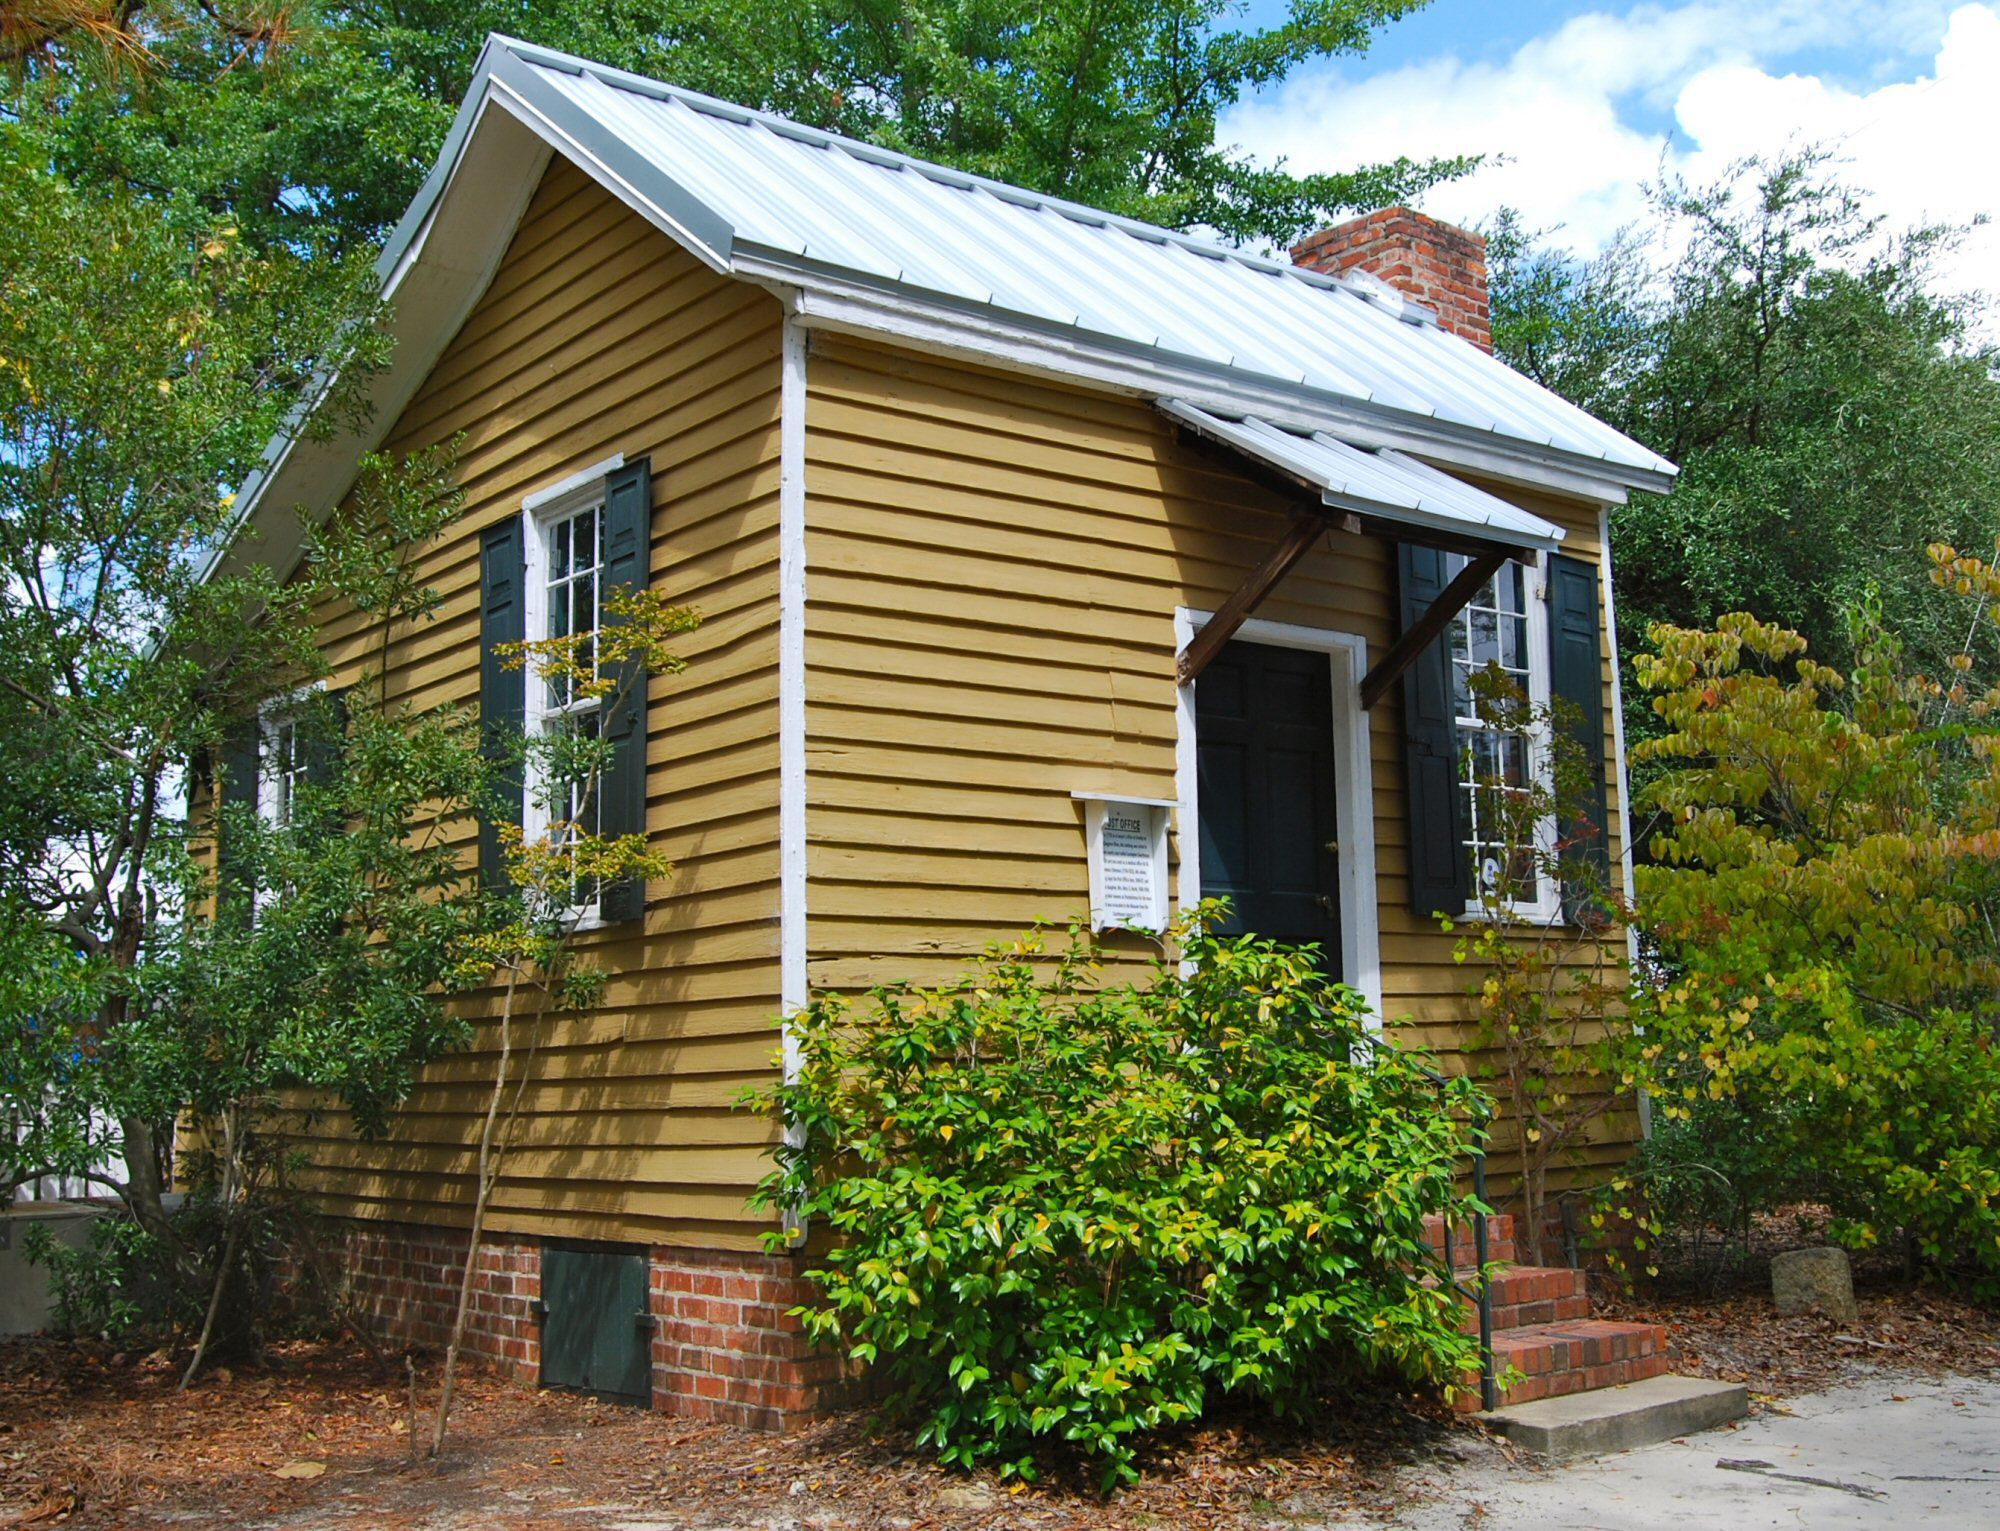 Photo of a small building, a modified saltbox, deep gold with white trim and very dark shutters.